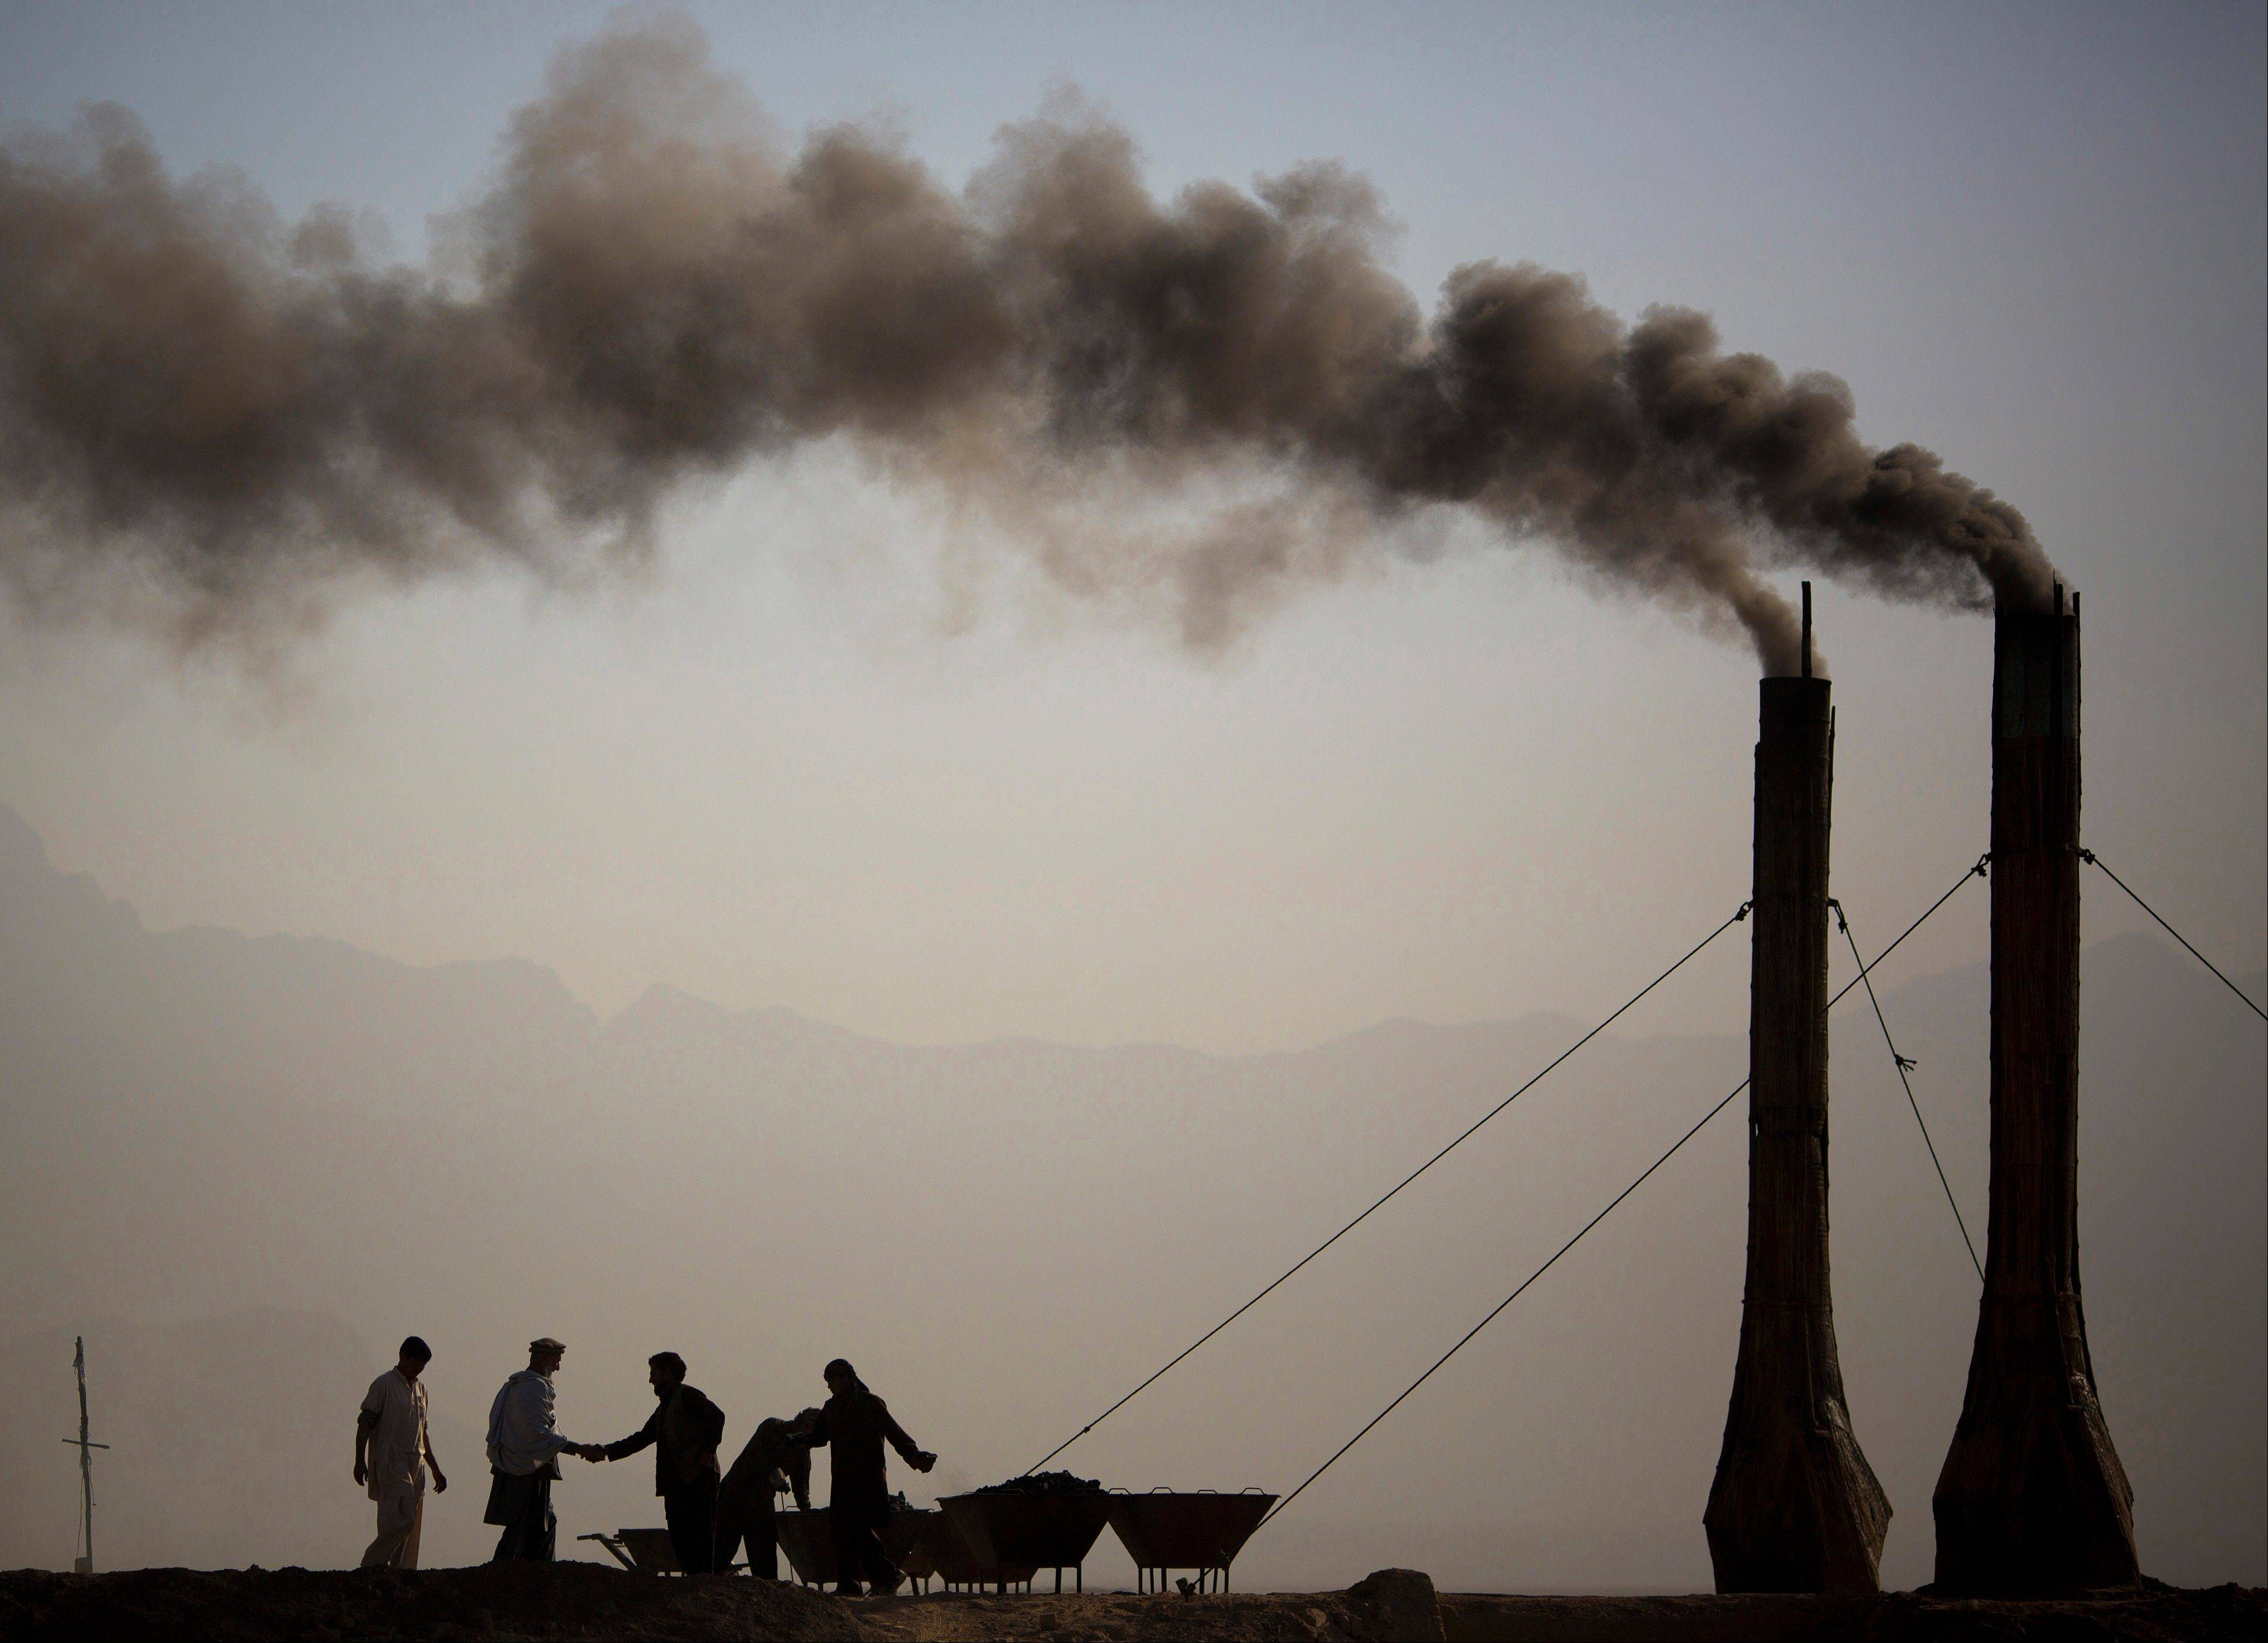 At a brick kiln, workers greet each other Saturday while preparing the kilns to fire bricks, early in the morning on the main highway leading to Bagram, on the outskirts of Kabul, Afghanistan. In the last two years, as U.S. and NATO troops prepare to leave Afghanistan, brick makers said business has drop